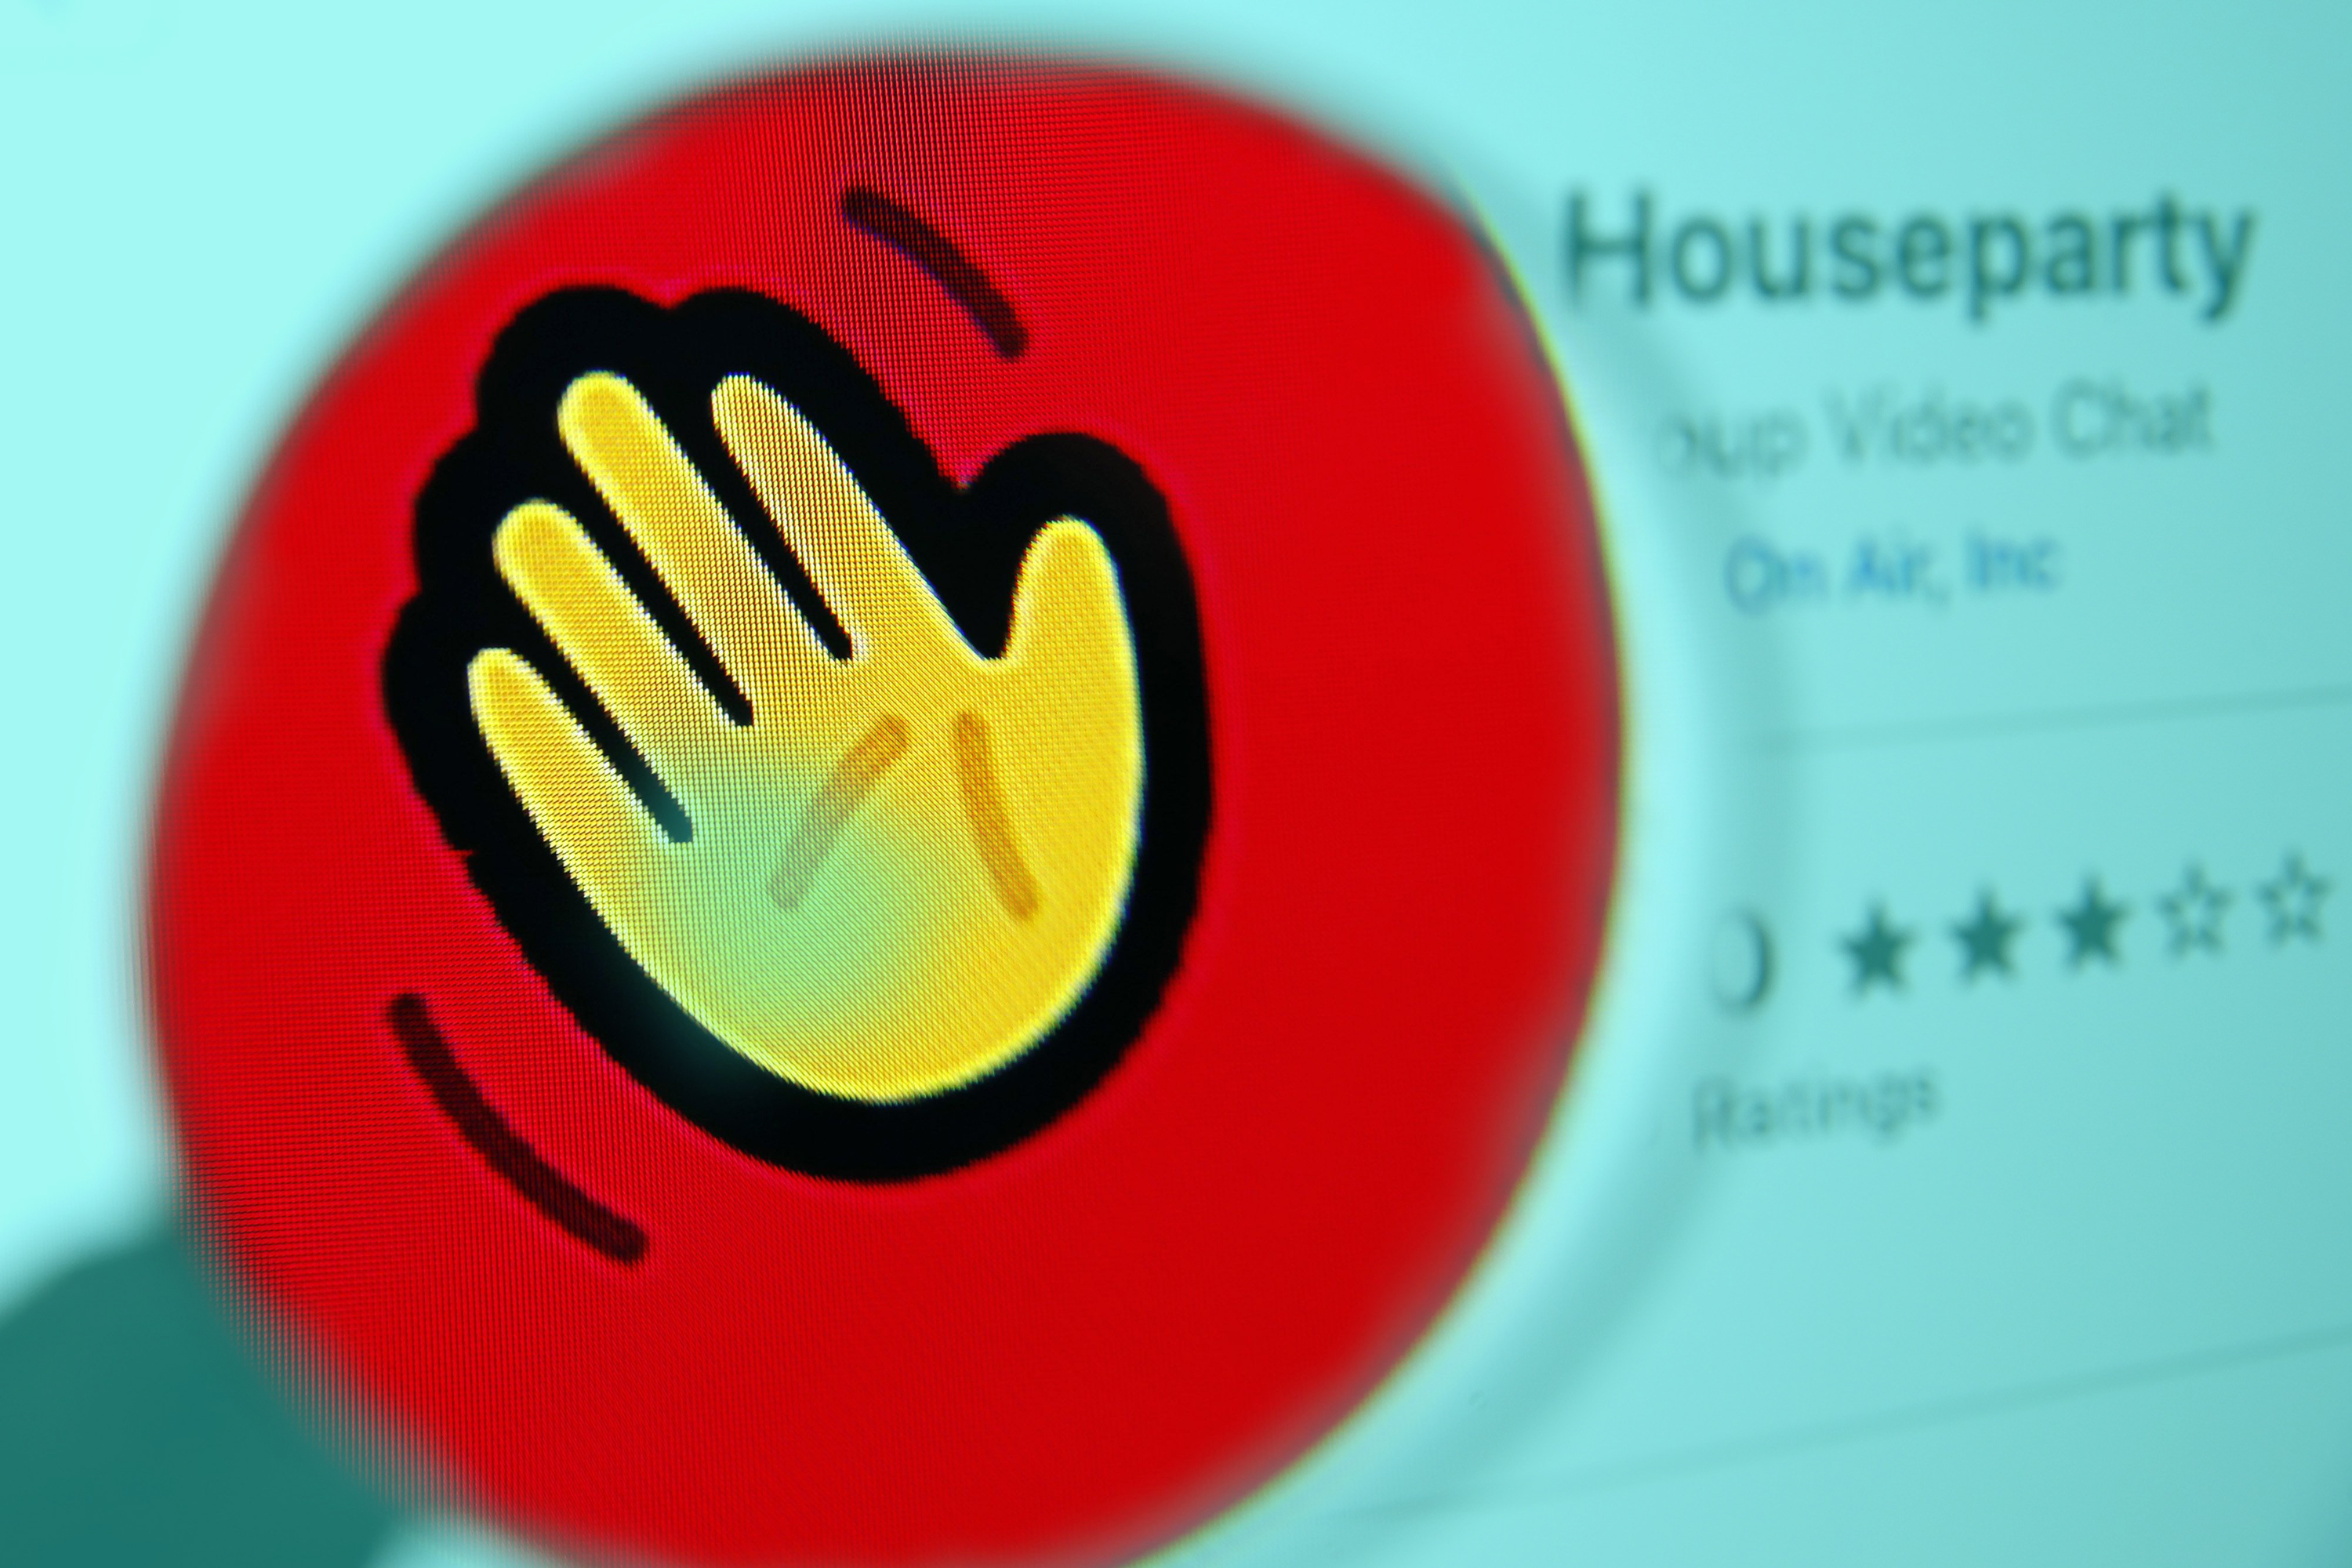 Houseparty vies with Zoom to be the app of choice for homebound chatters